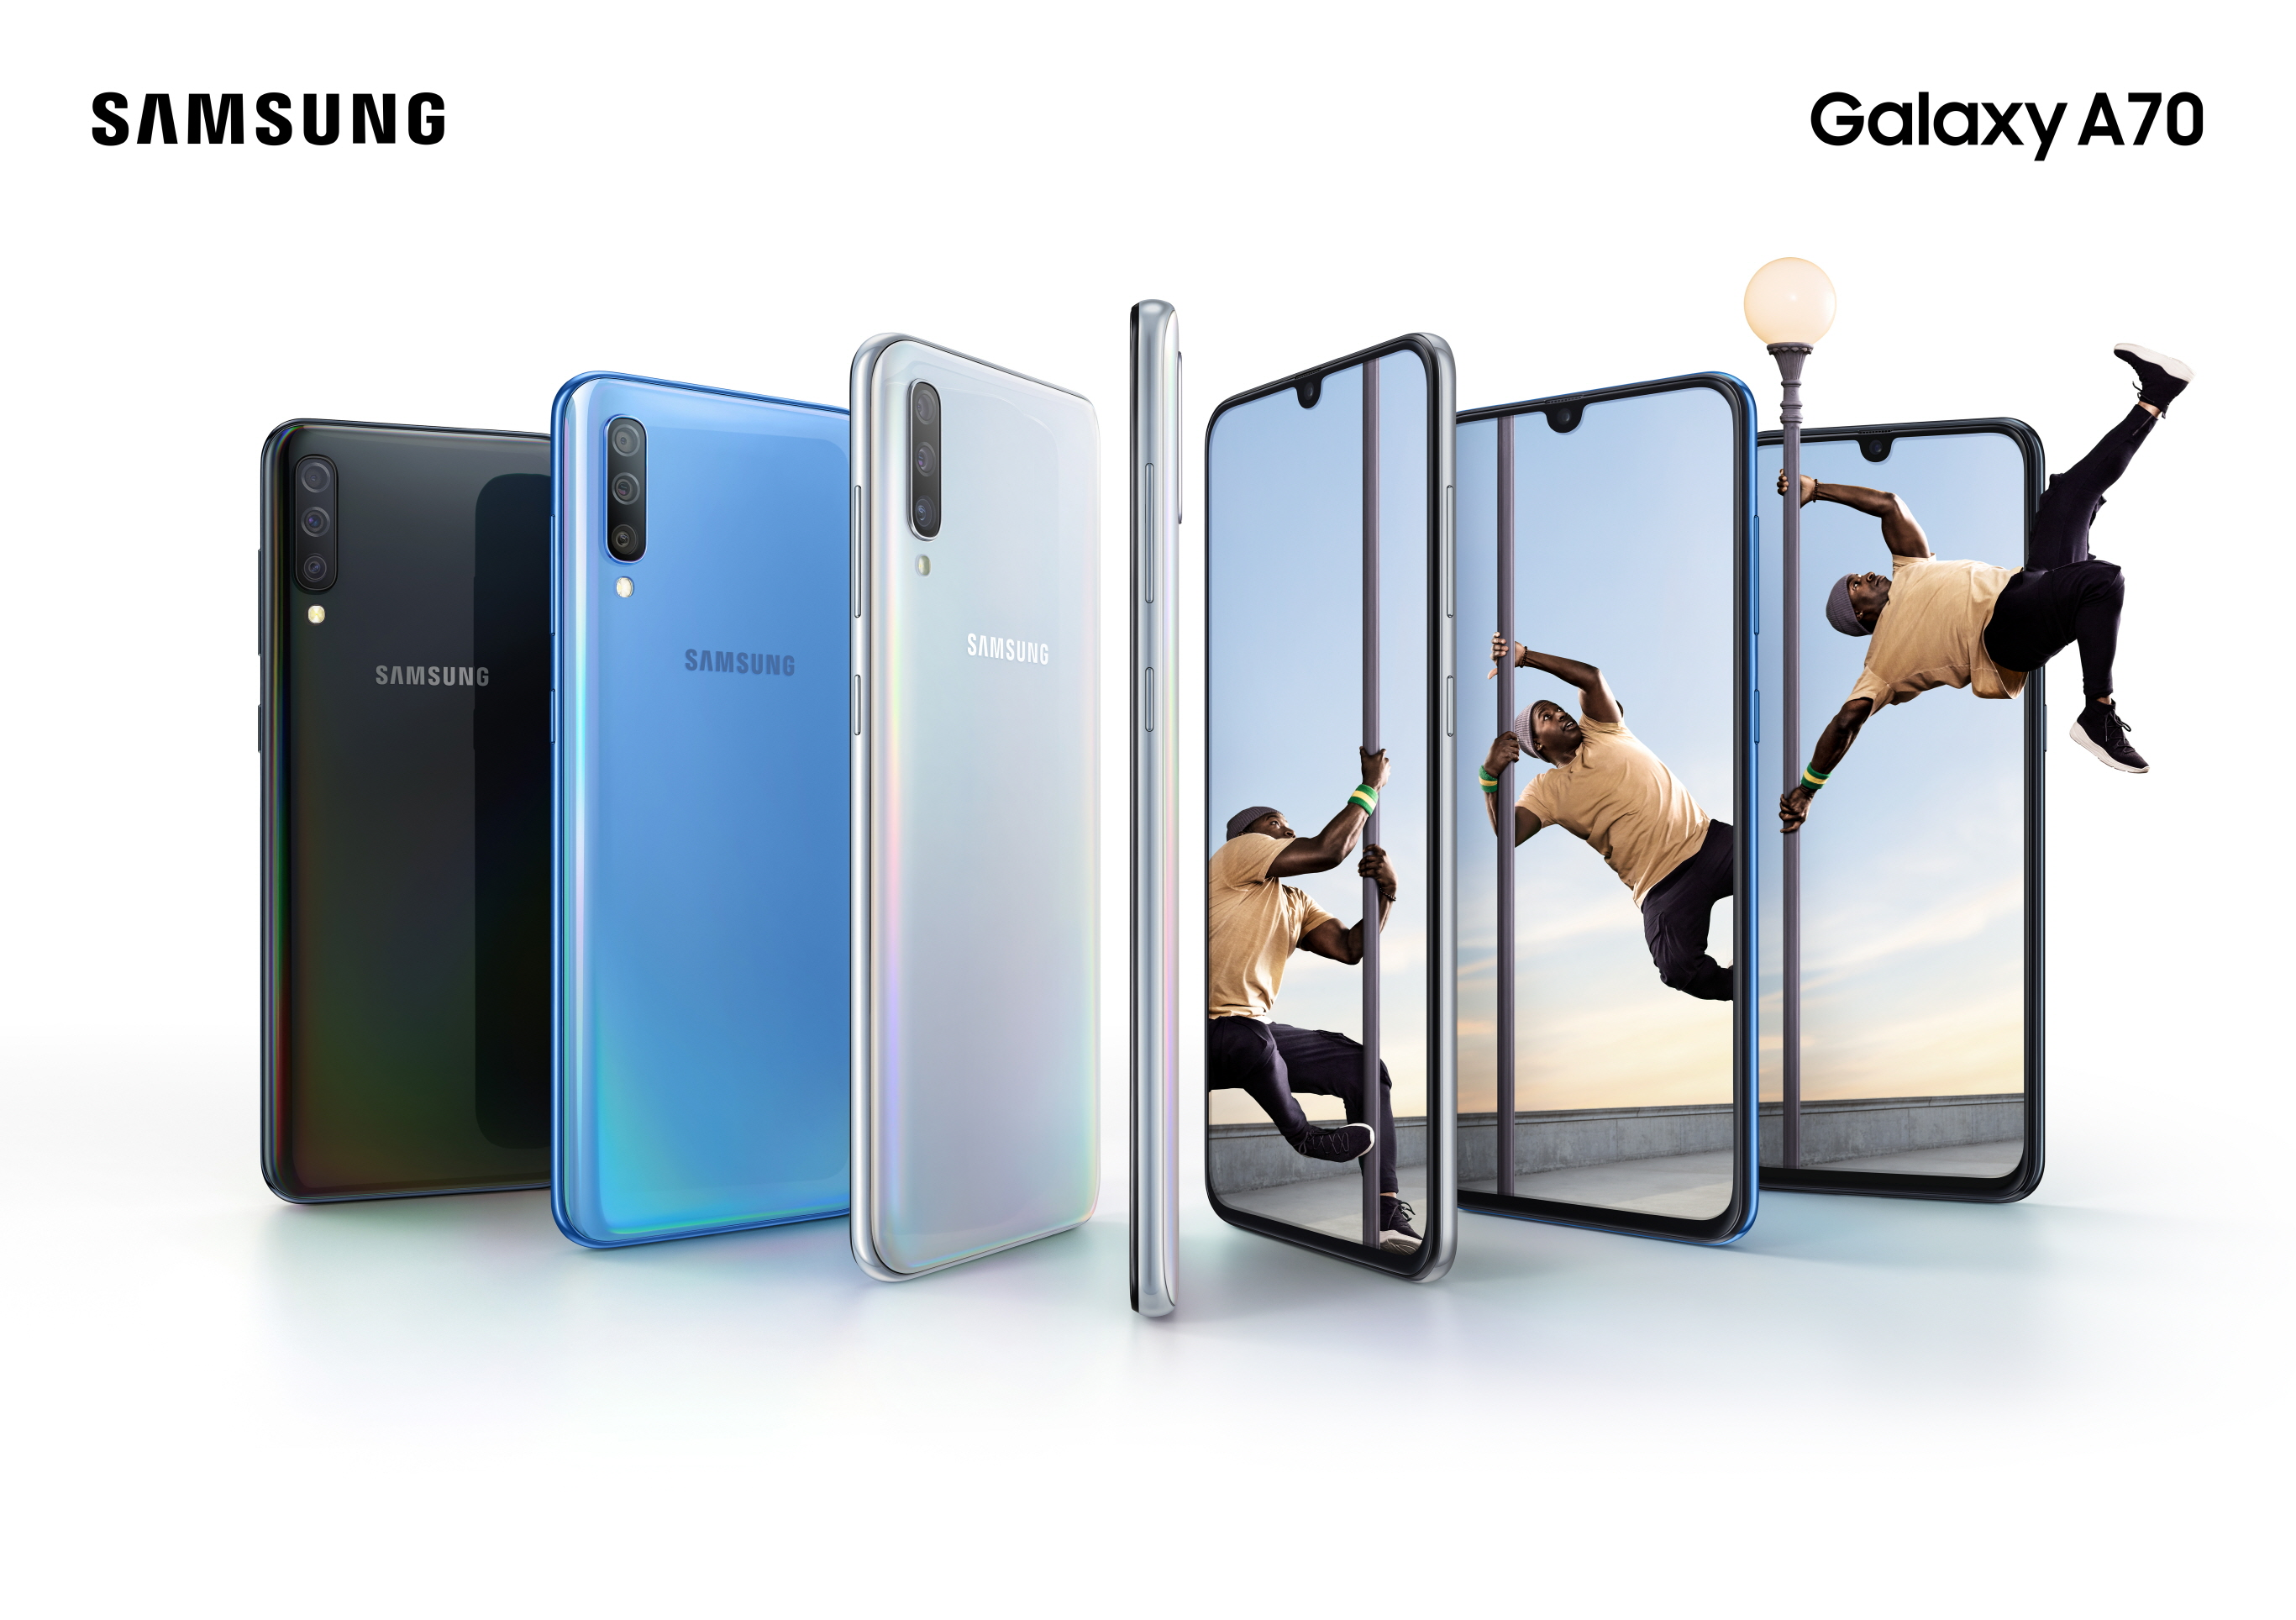 Samsung Galaxy S10 5G Prices and Launch Date Announced